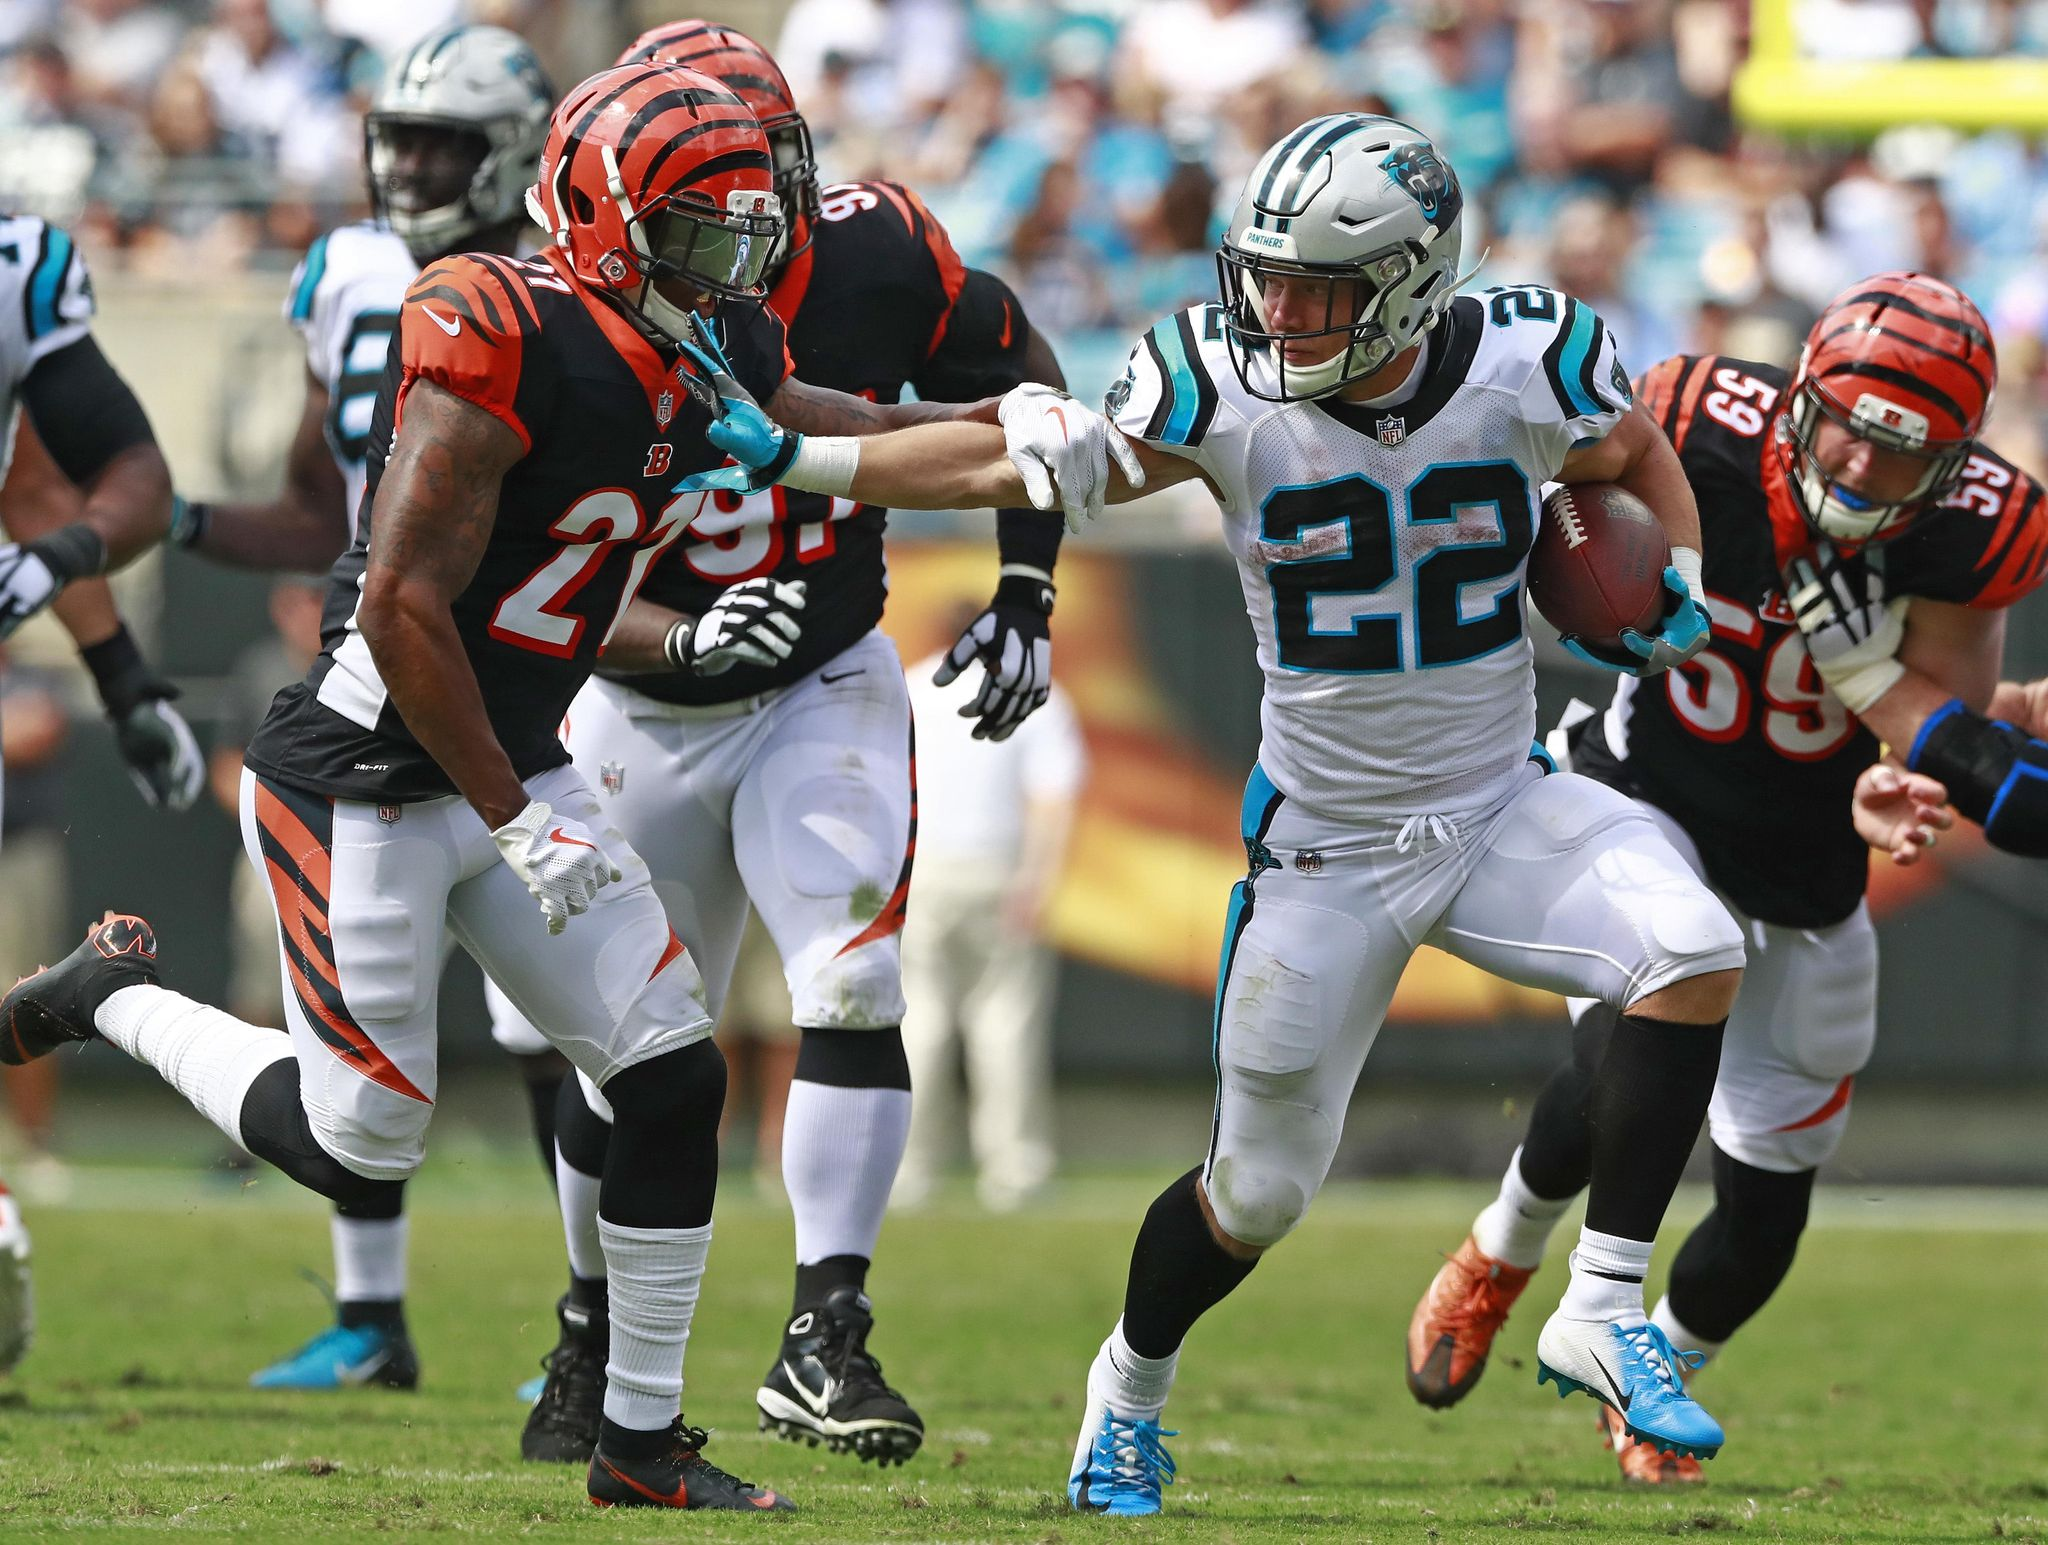 Bengals run defense stumbles in 31-21 loss to Panthers - Washington Times